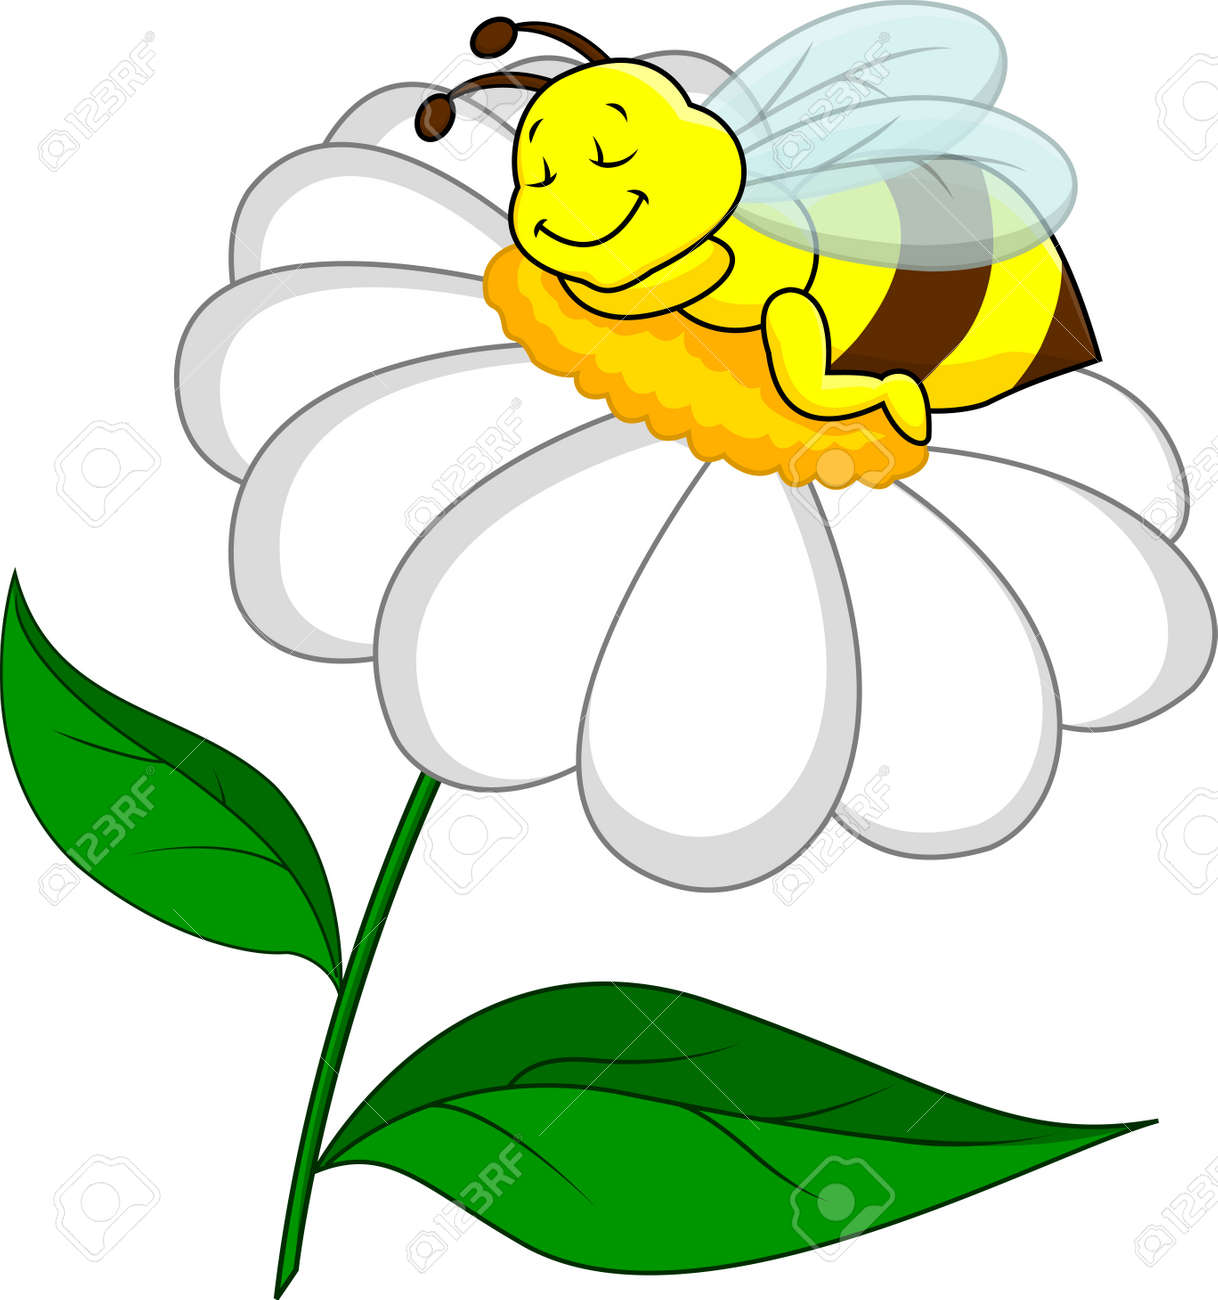 bee sleeping on flower royalty free cliparts vectors and stock